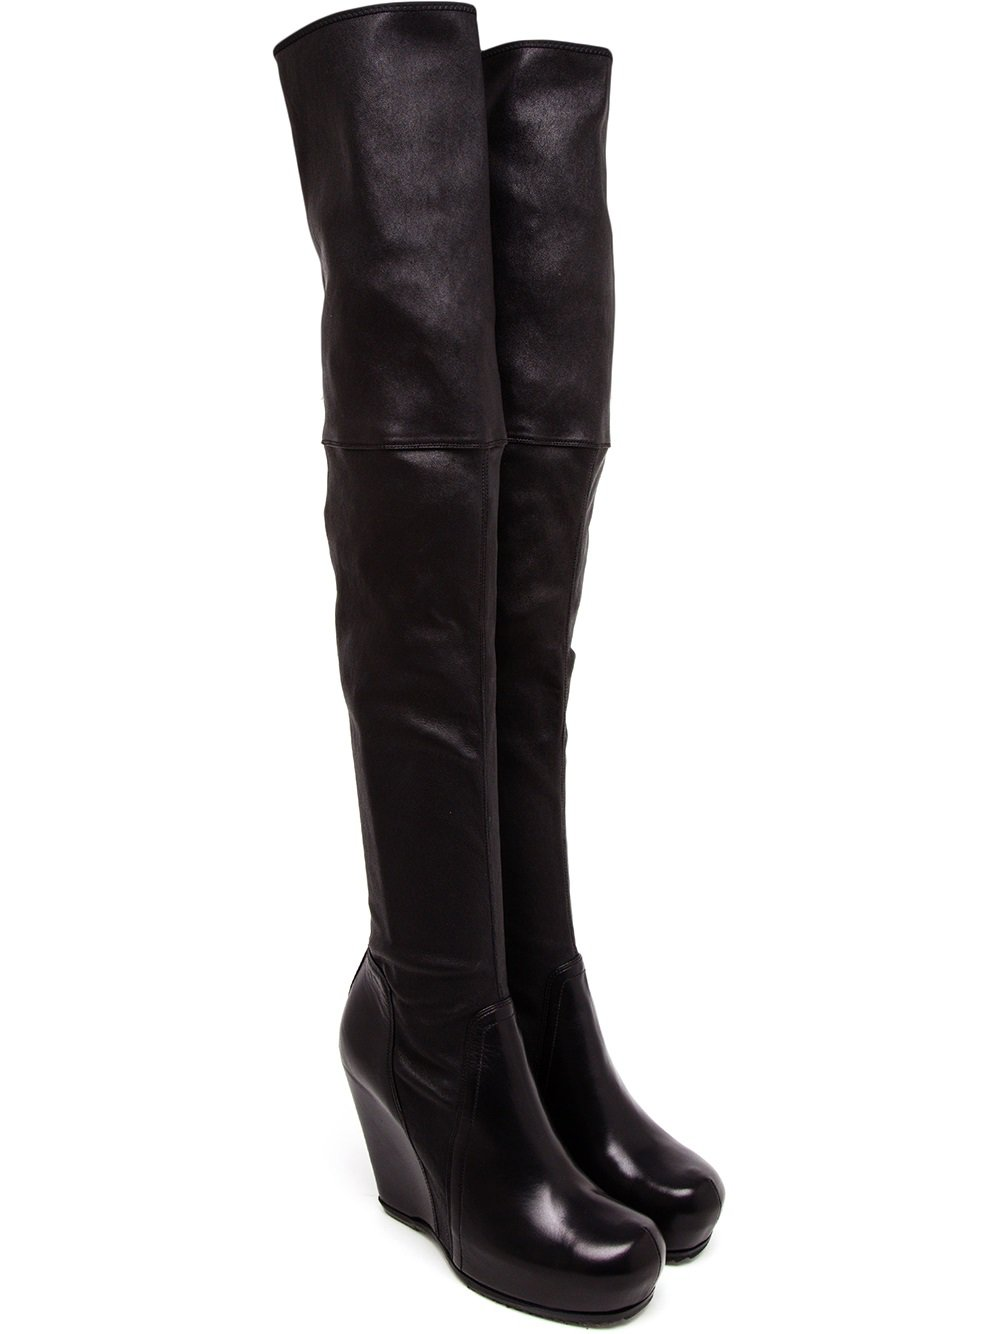 rick owens leather thigh high wedge boots from farfetch